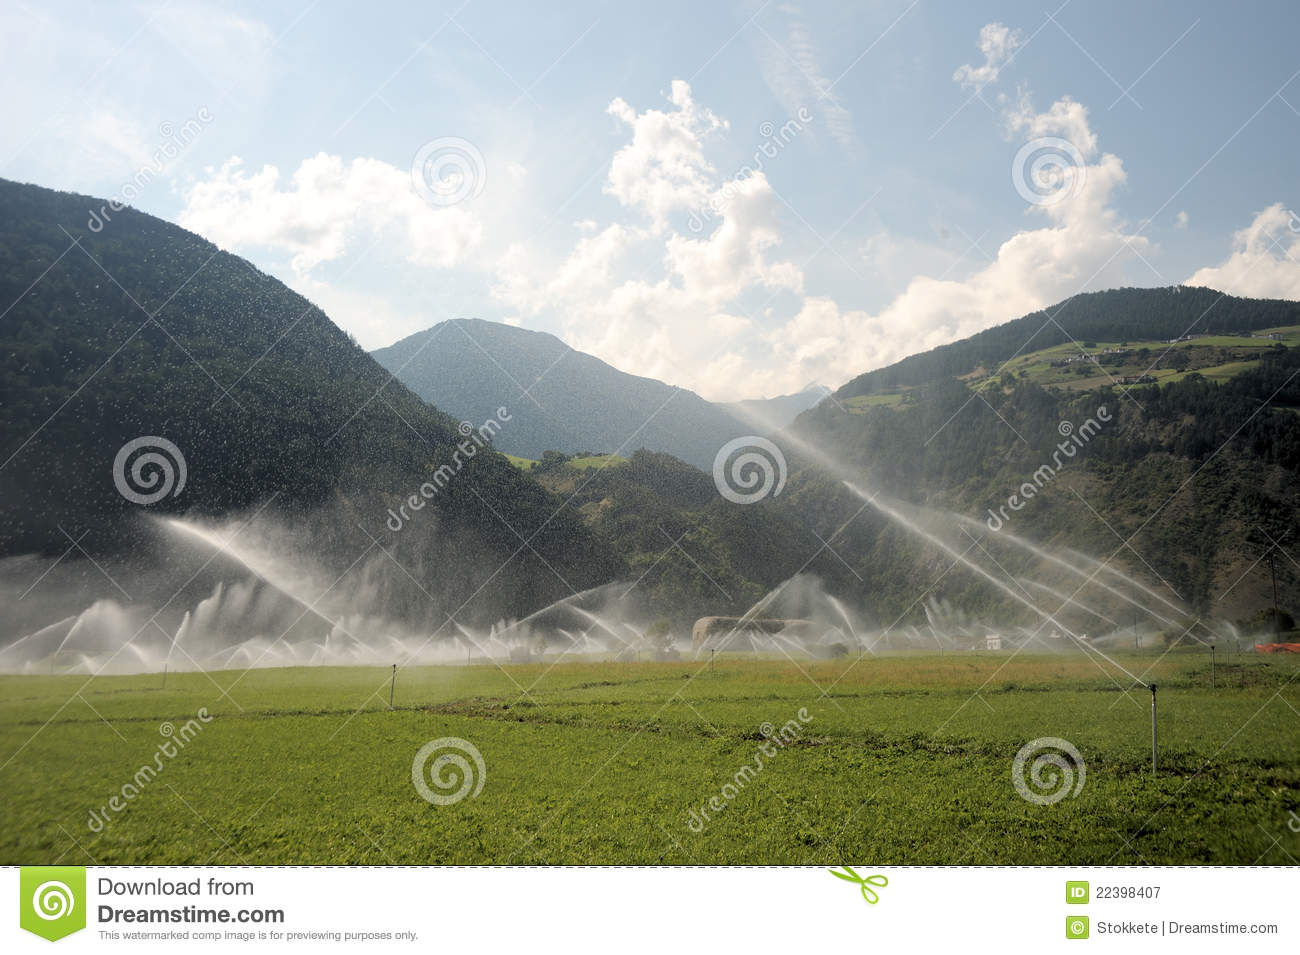 Water Sprinklers Royalty Free Stock Photography   Image  22398407